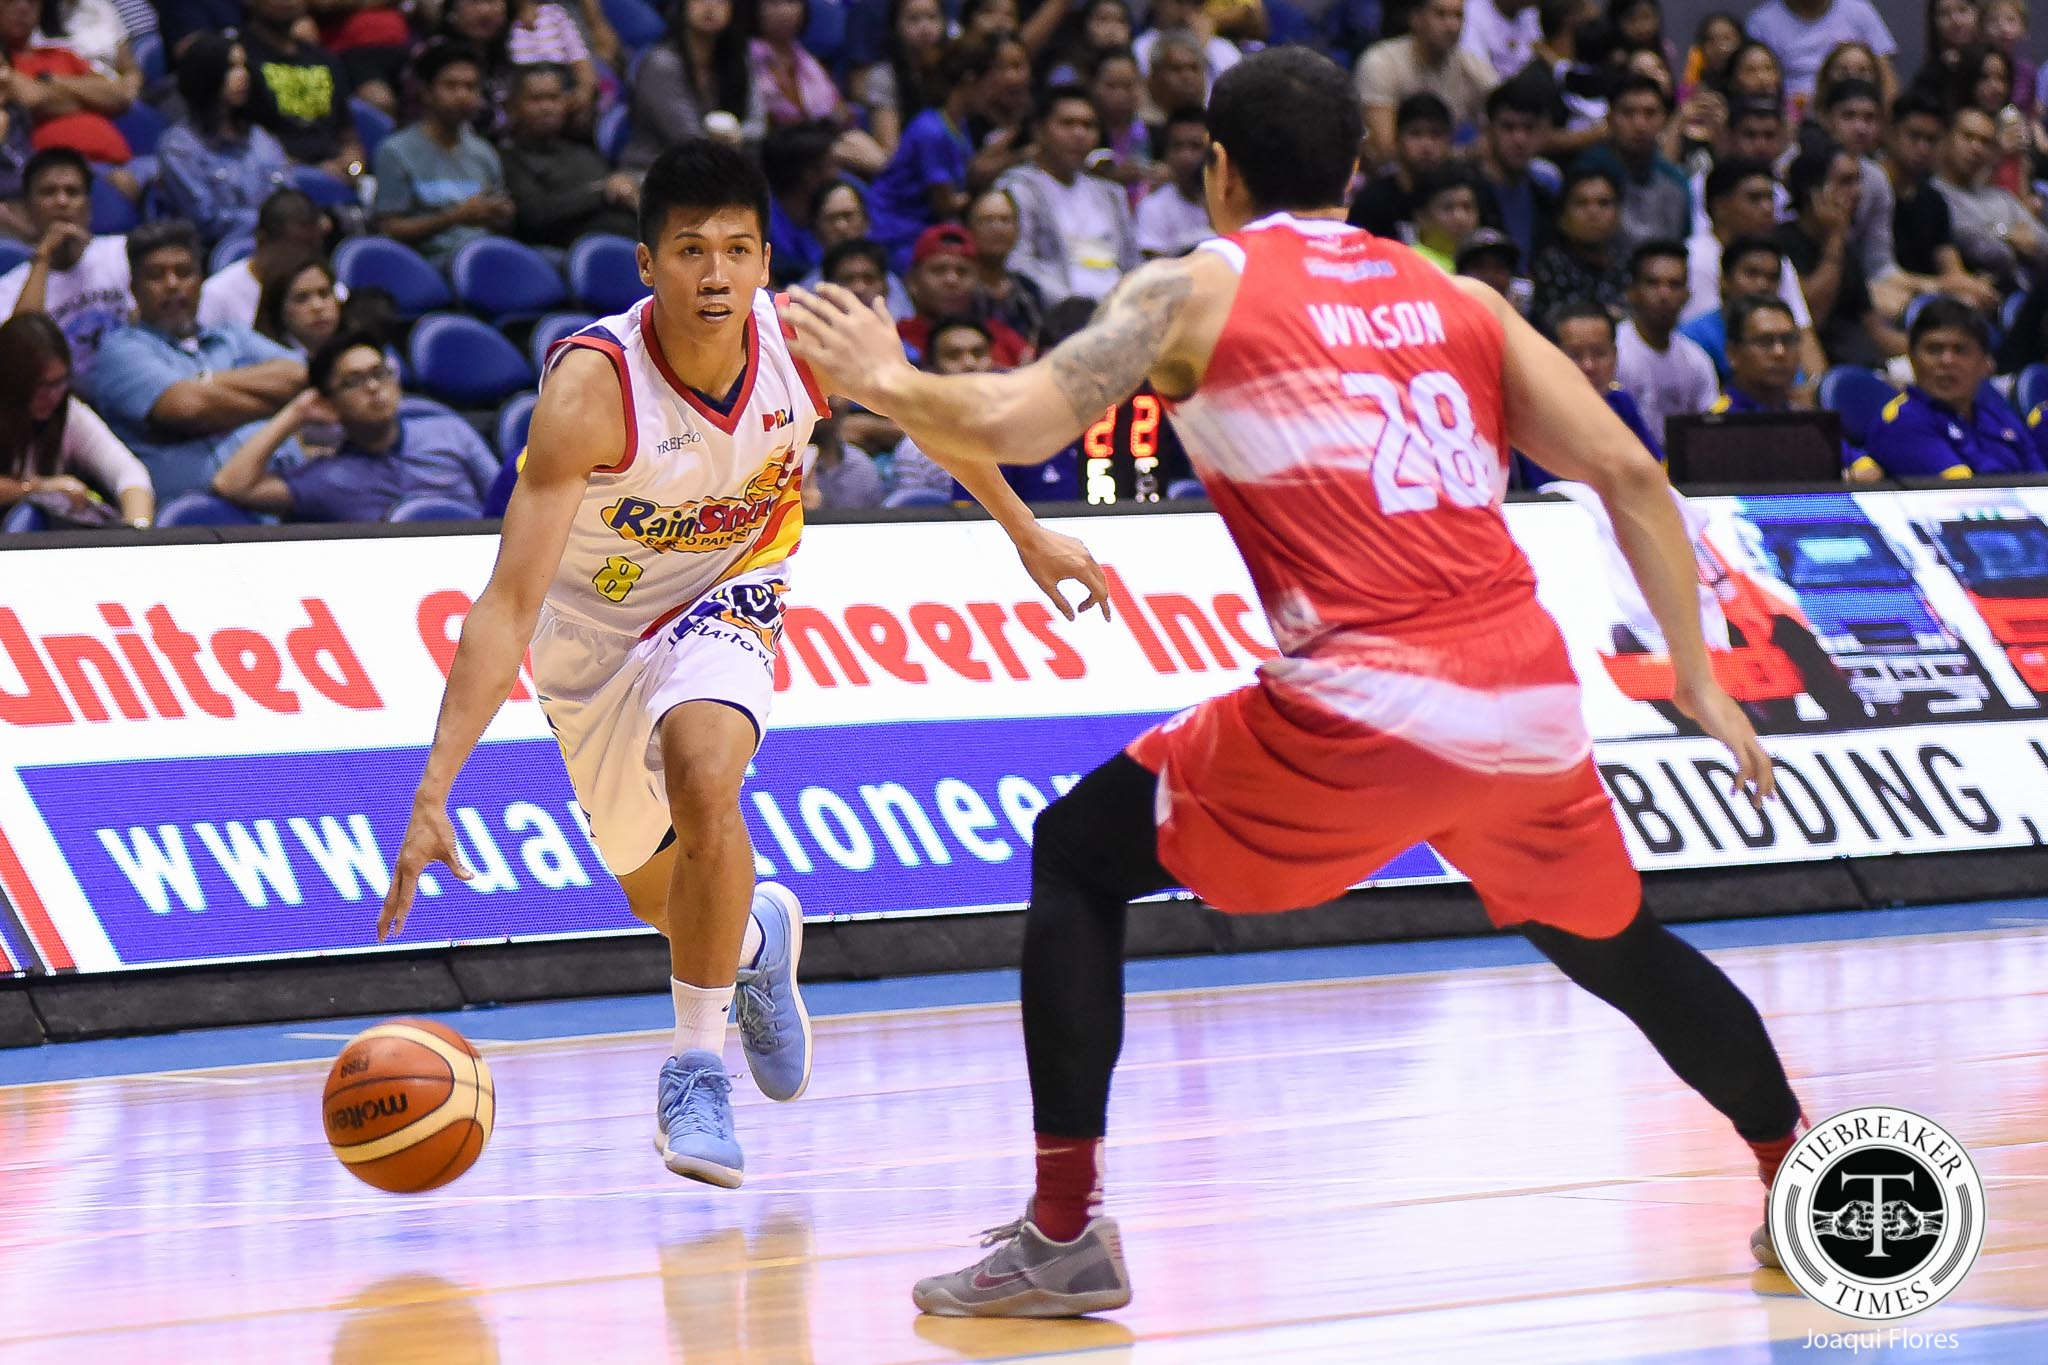 Tiebreaker Times Daquioag trade a result of Rain or Shine drafting good prospects, says Garcia Basketball News PBA  Vince Tolentino Rain or Shine Elasto Painters Prince Rivero PBA Season 45 Ed Daquioag Clint Doliguez Caloy Garcia Adrian Wong